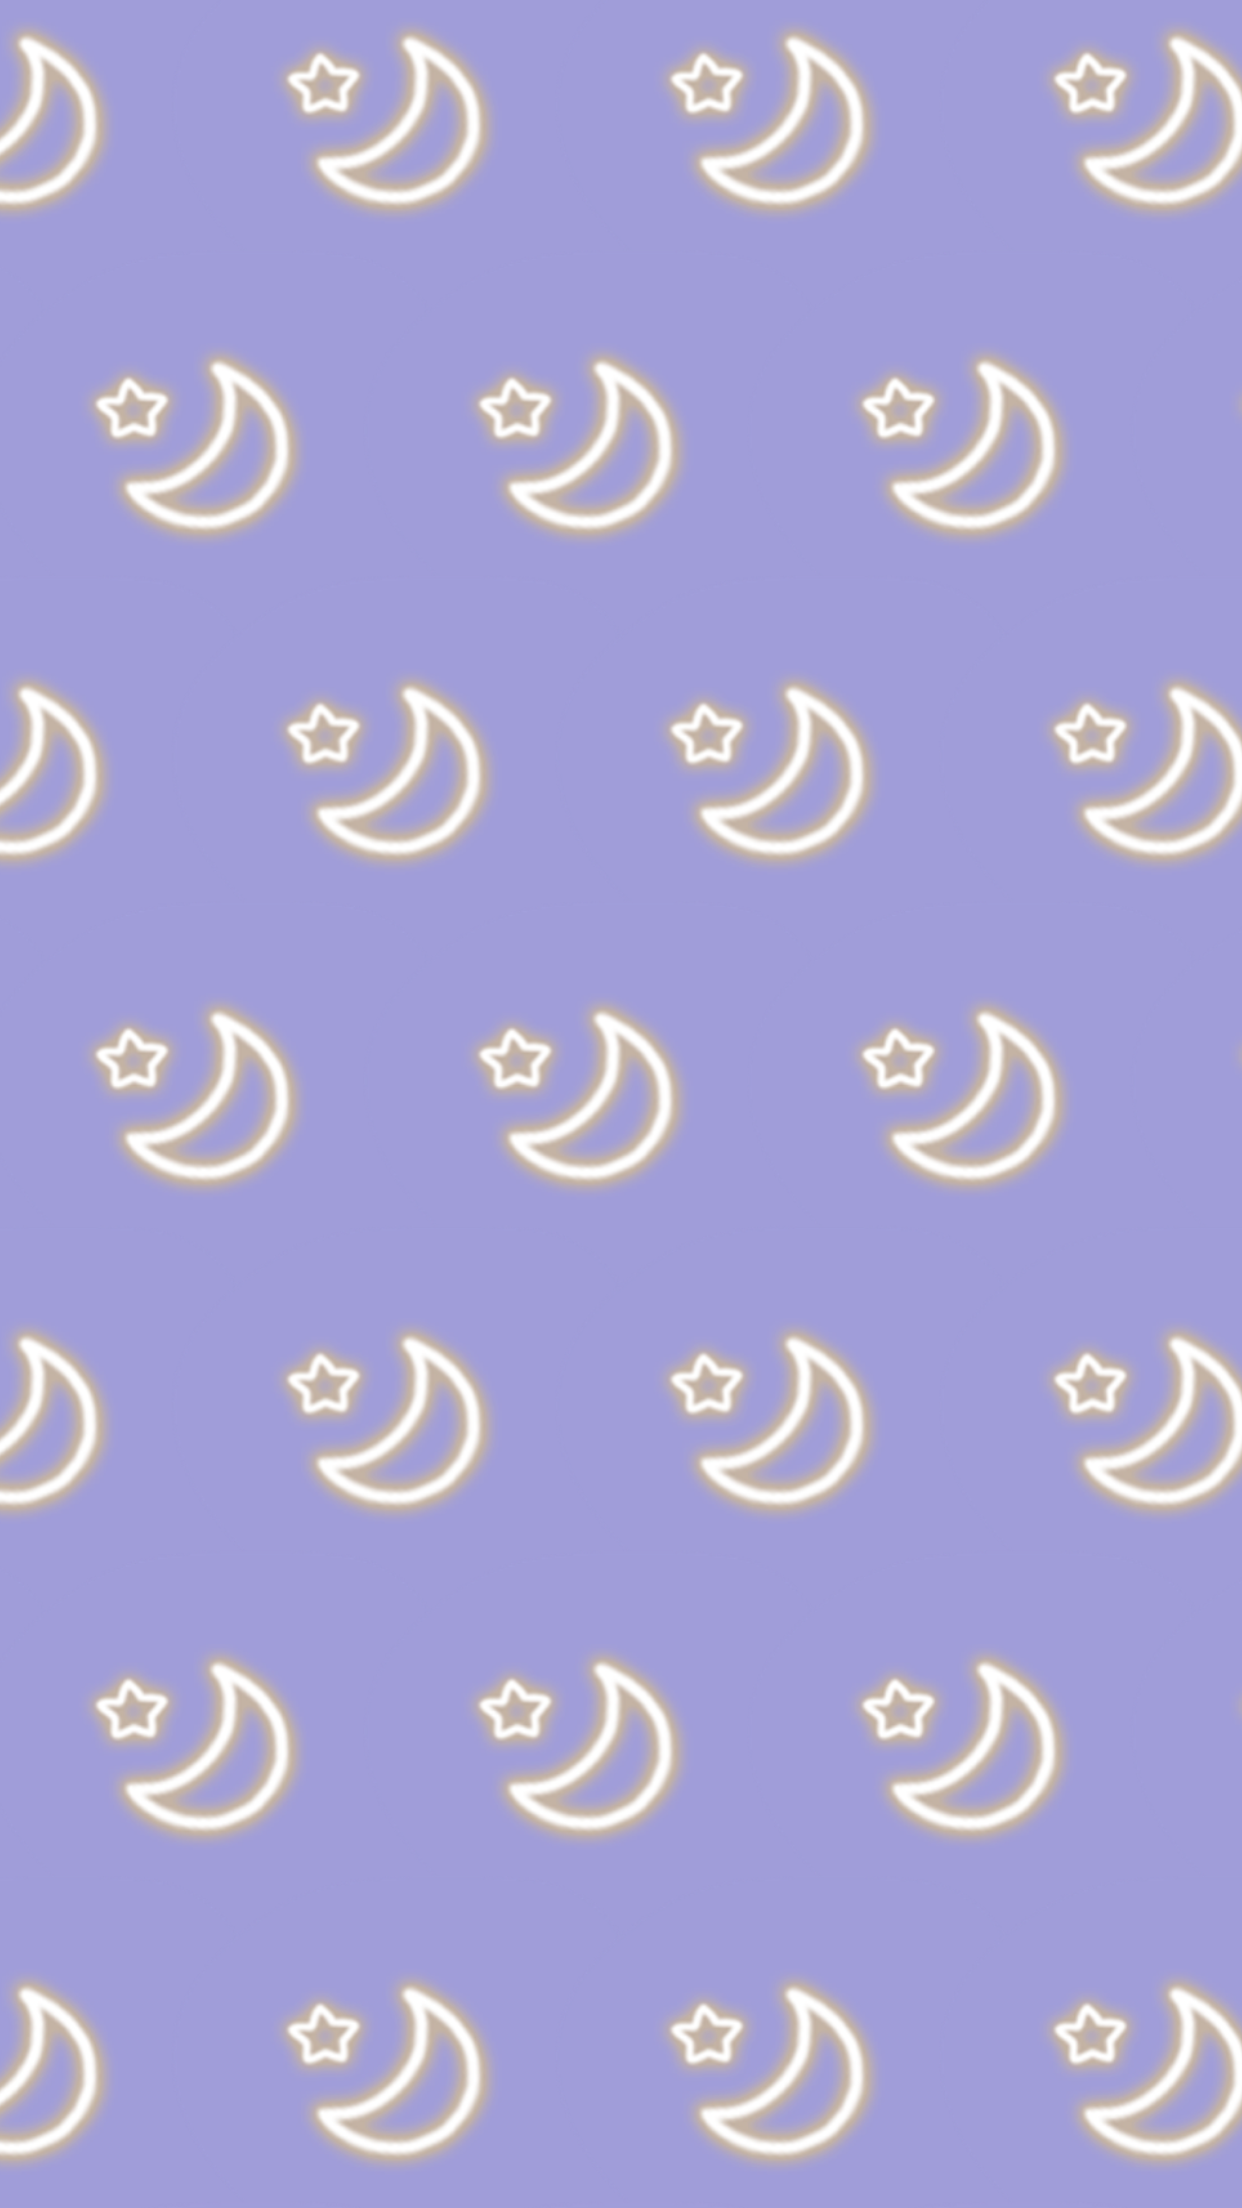 Witch Aesthetic Wallpaper